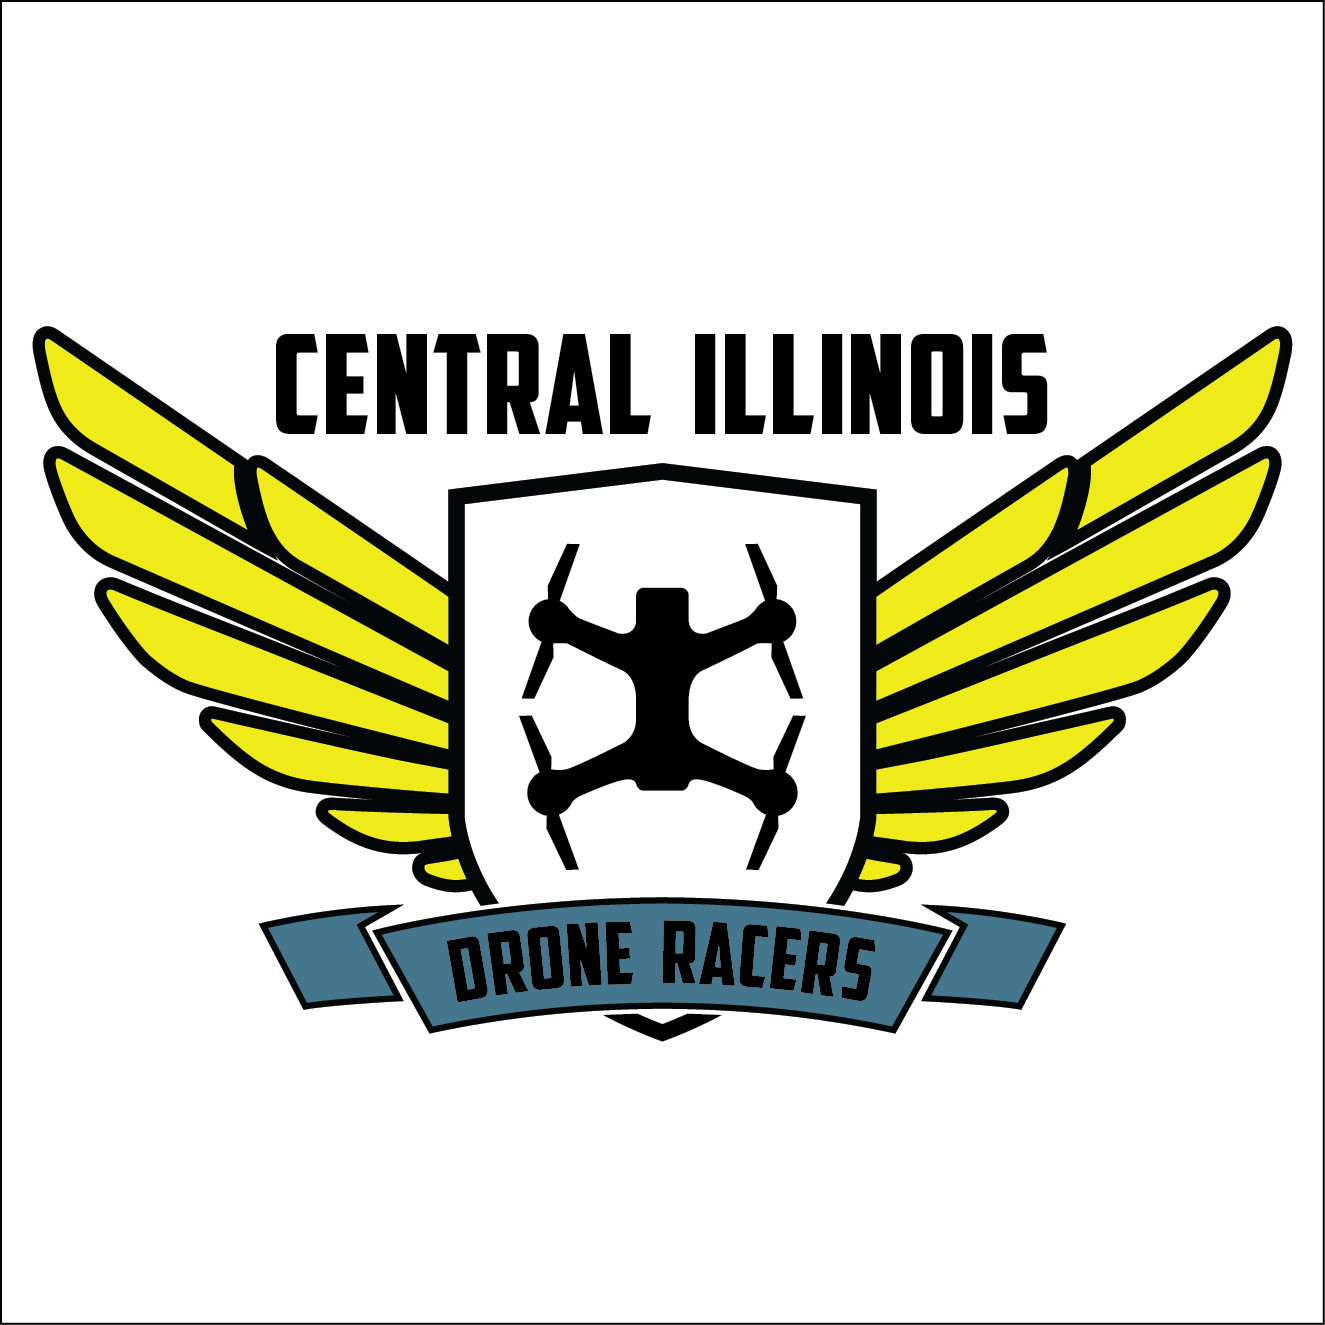 Central Illinois Drone Racers